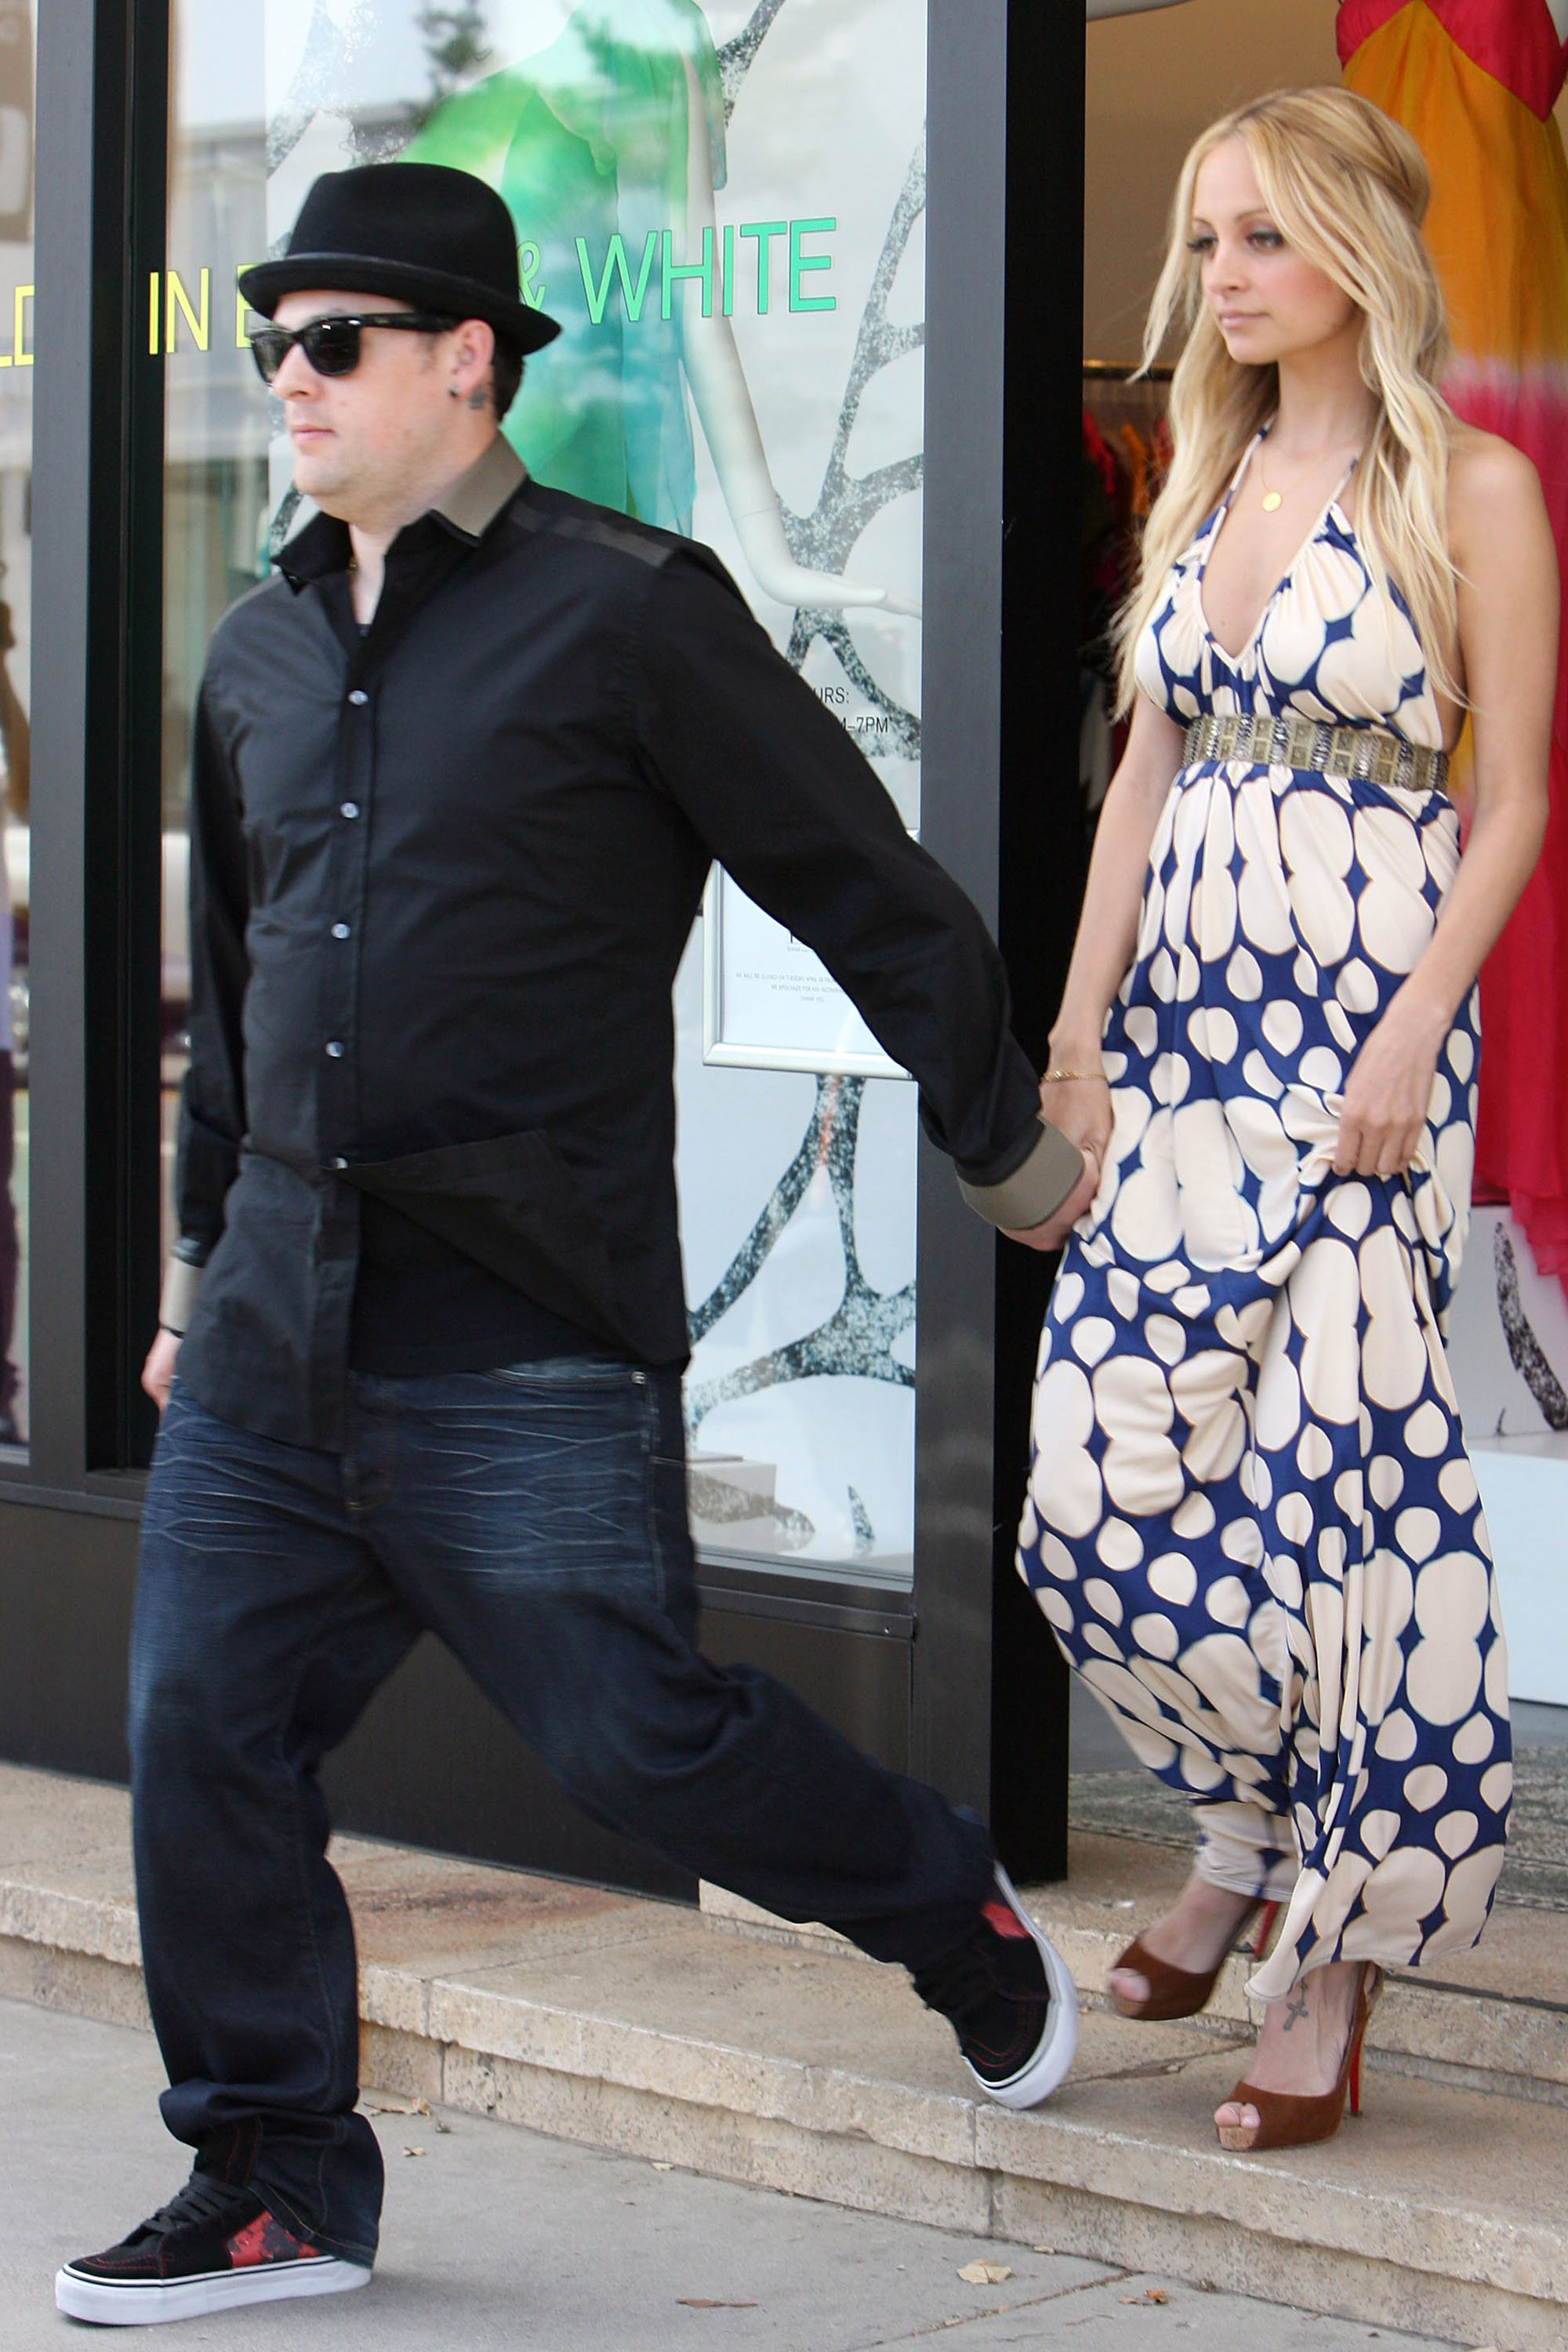 Joel Madden's in No Hurry to Get Hitched